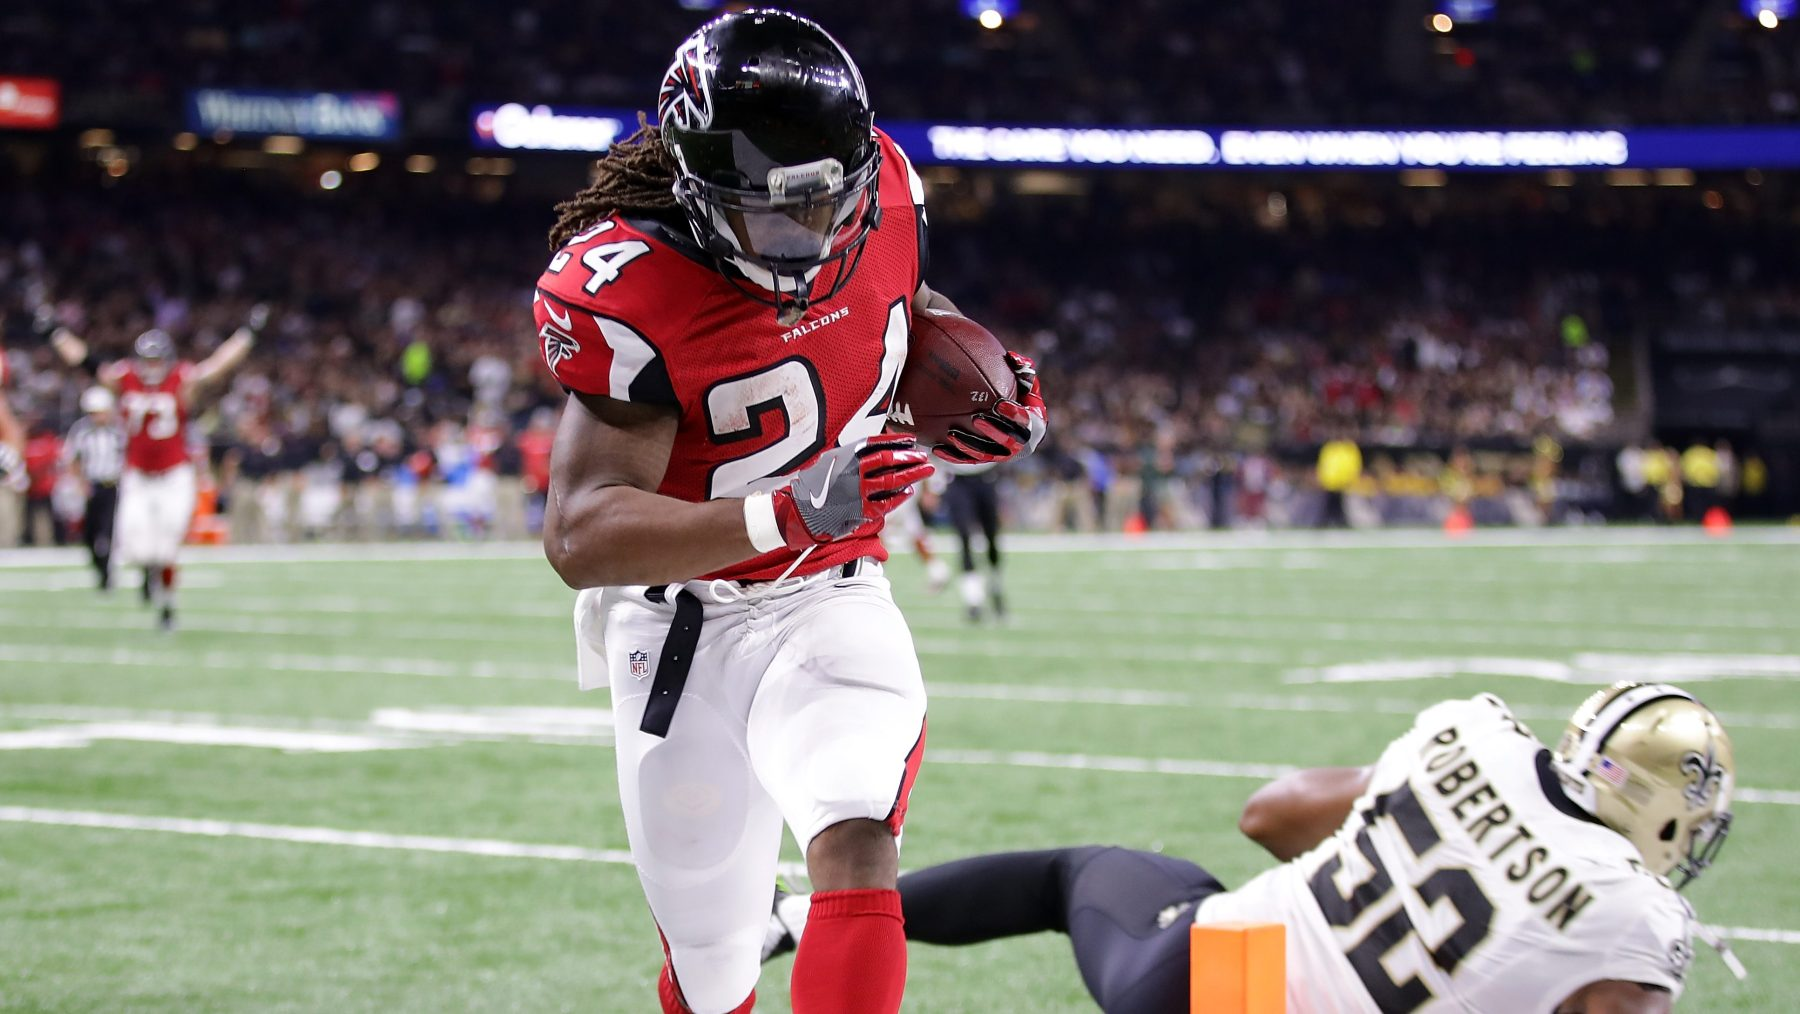 Devonta Freeman #24 of the Atlanta Falcons reacts after scoring a touchdown against the New Orleans Saints at the Mercedes-Benz Superdome on September 26, 2016 in New Orleans, Louisiana.  (Chris Graythen/Getty Images)